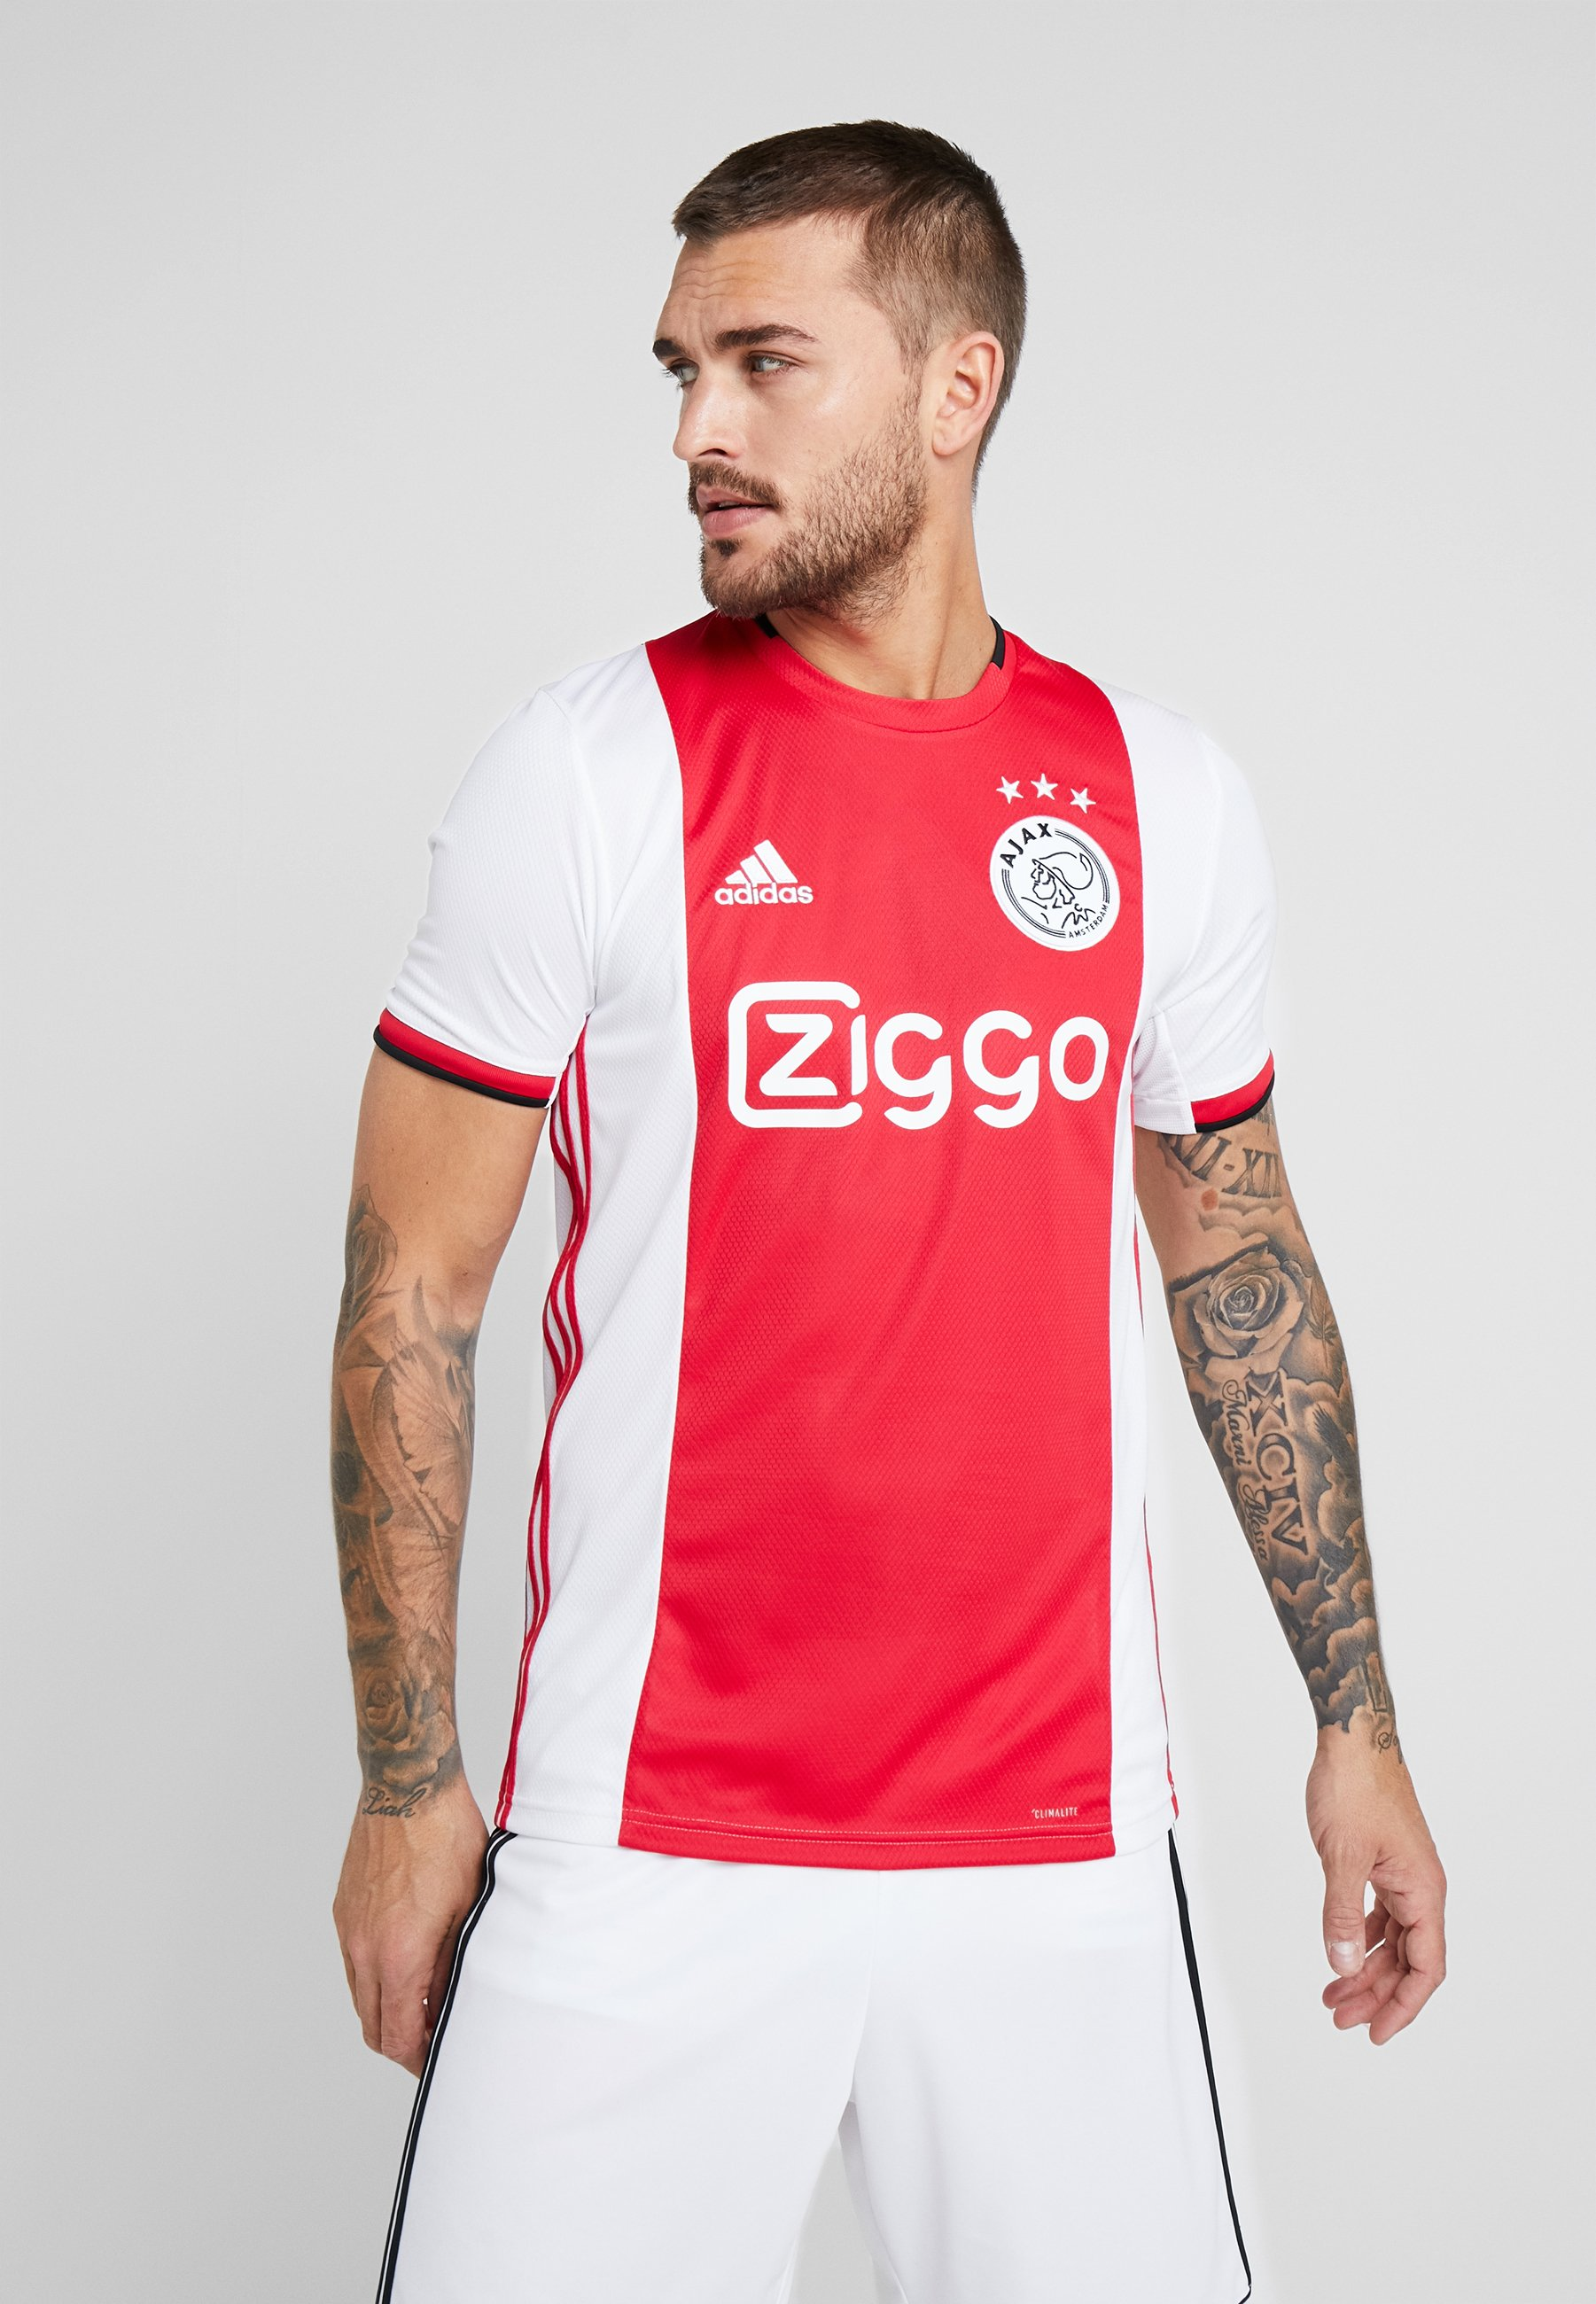 H Red De Amsterdam JsyArticle Performance Supporter white black Adidas Ajax OPTXikZu